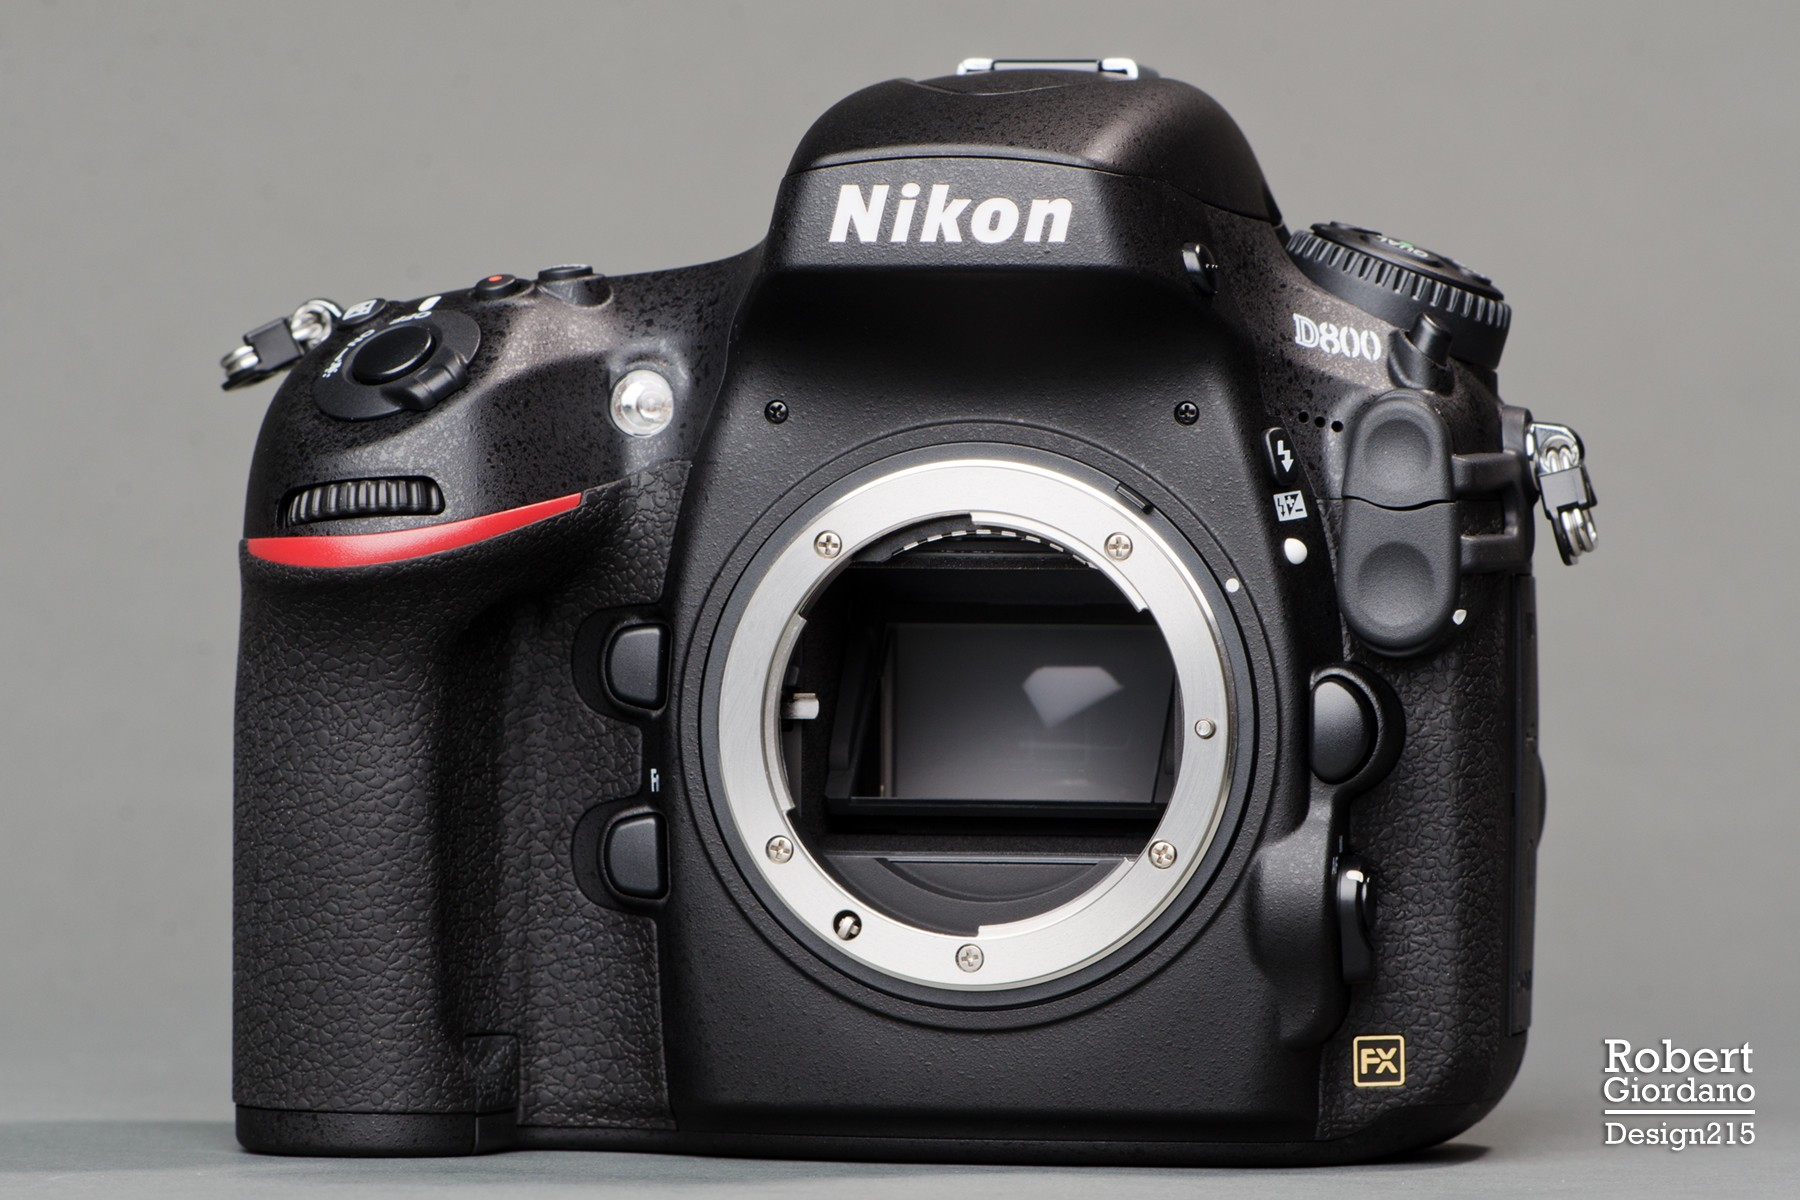 Nikon D800 Body - Product Photography